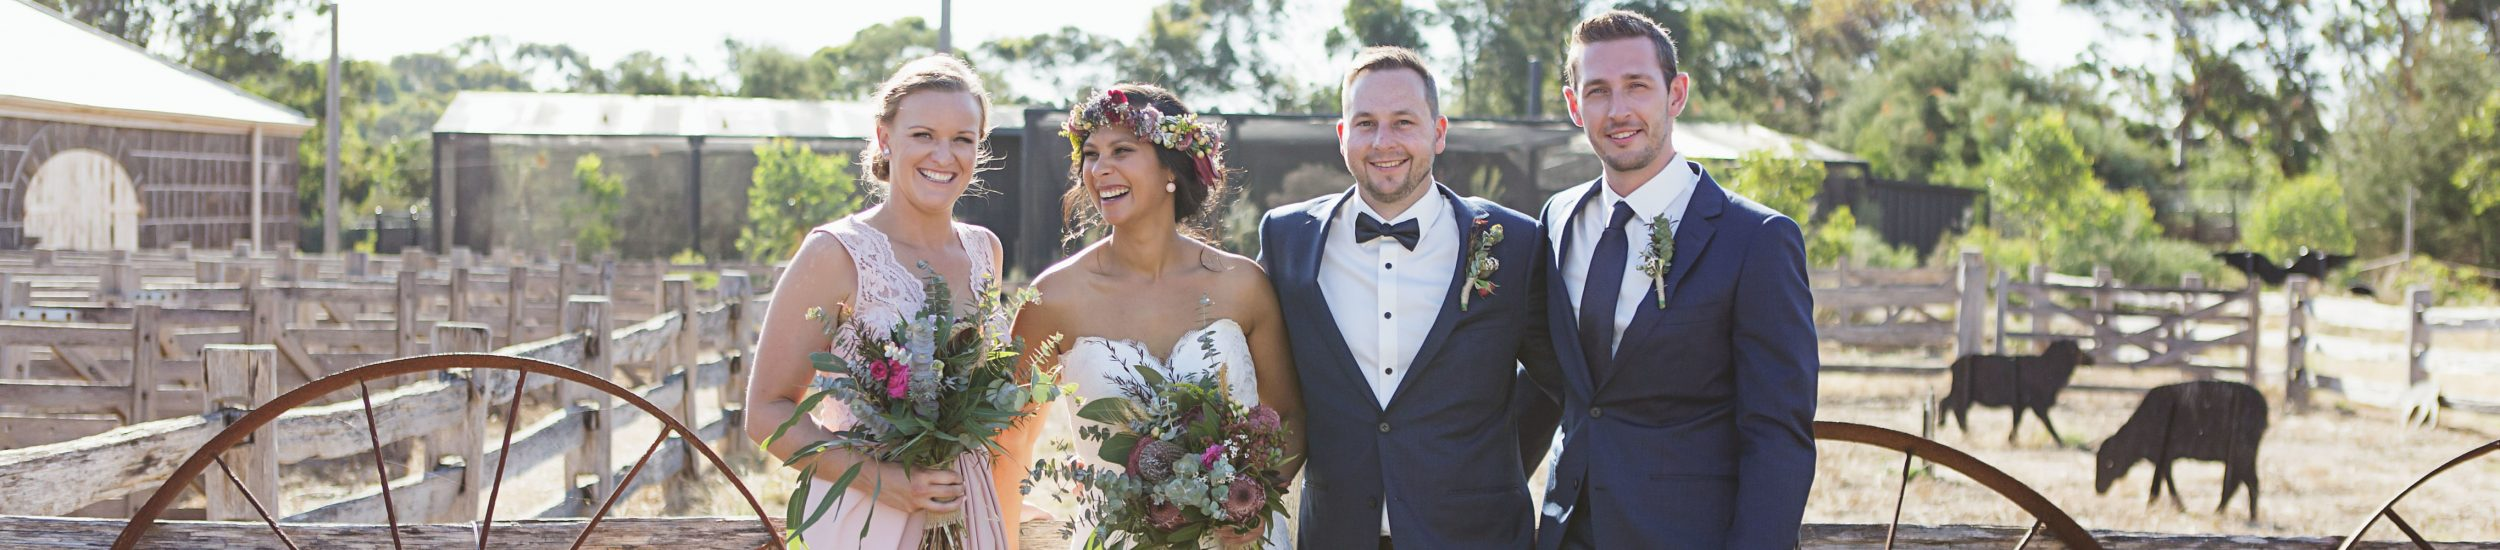 Werribee Zoo Wedding Farm